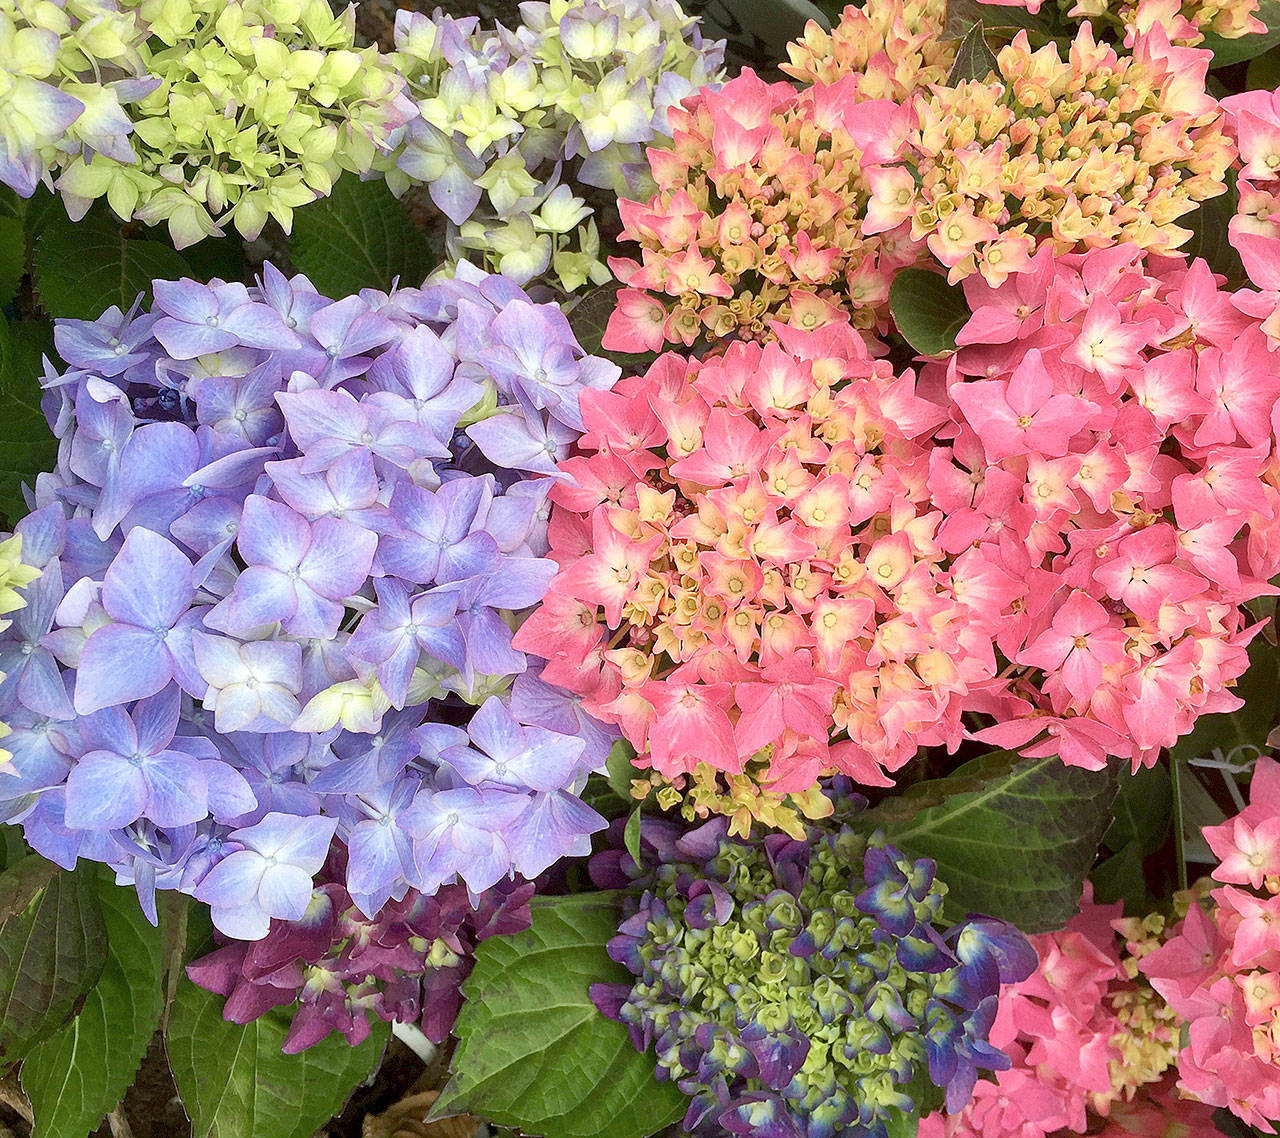 New collections of hydrangeas are reblooming and more compact. (Photo by Nicole Phillips)